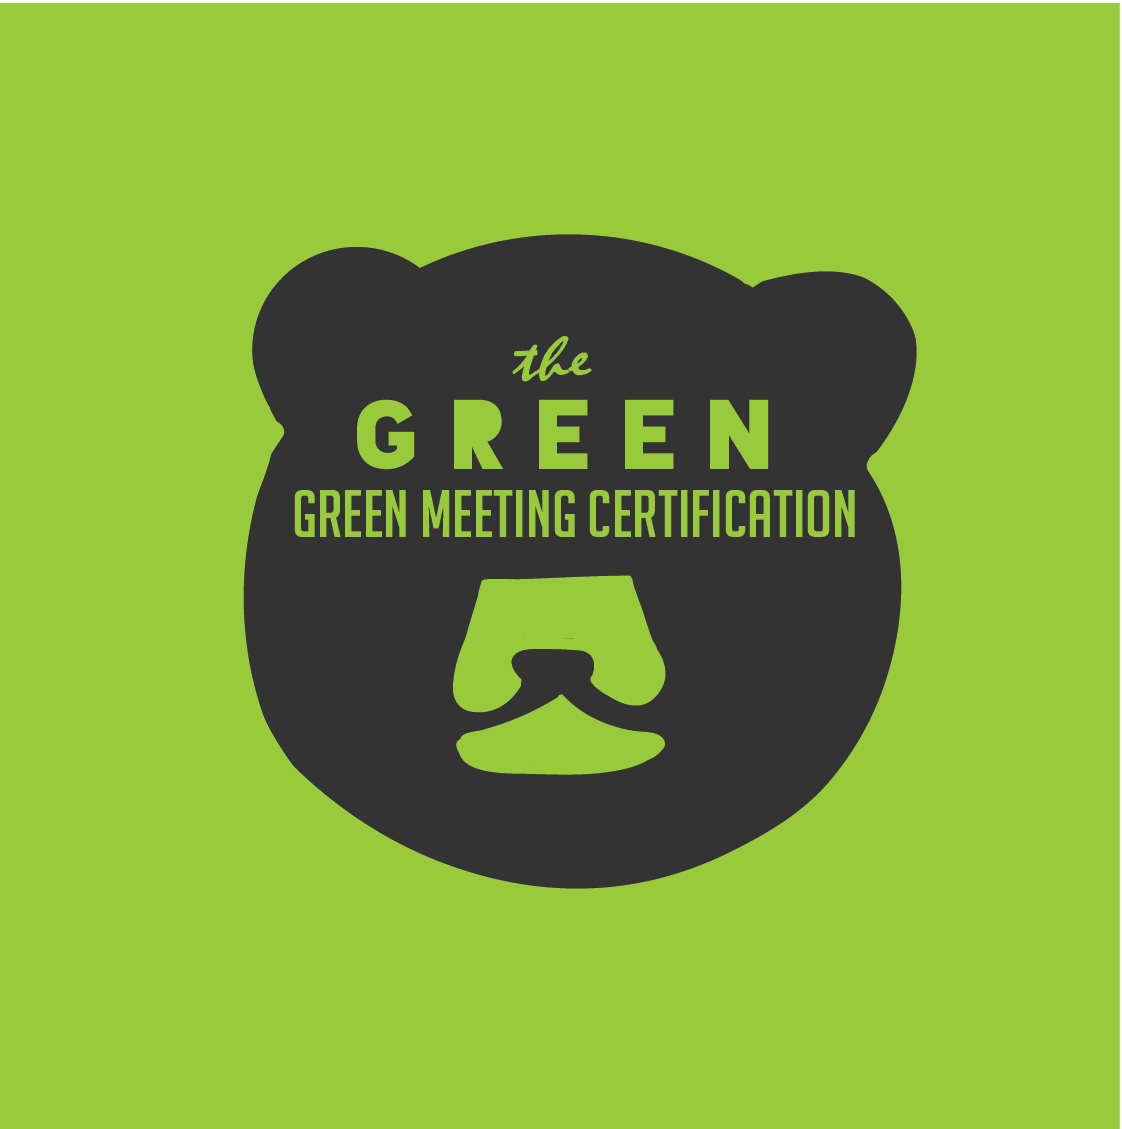 Green meeting certification sustainability baylor university green meetings seek to more efficiently marshal the universitys resources while reducing an offices overall environmental impact 1betcityfo Choice Image